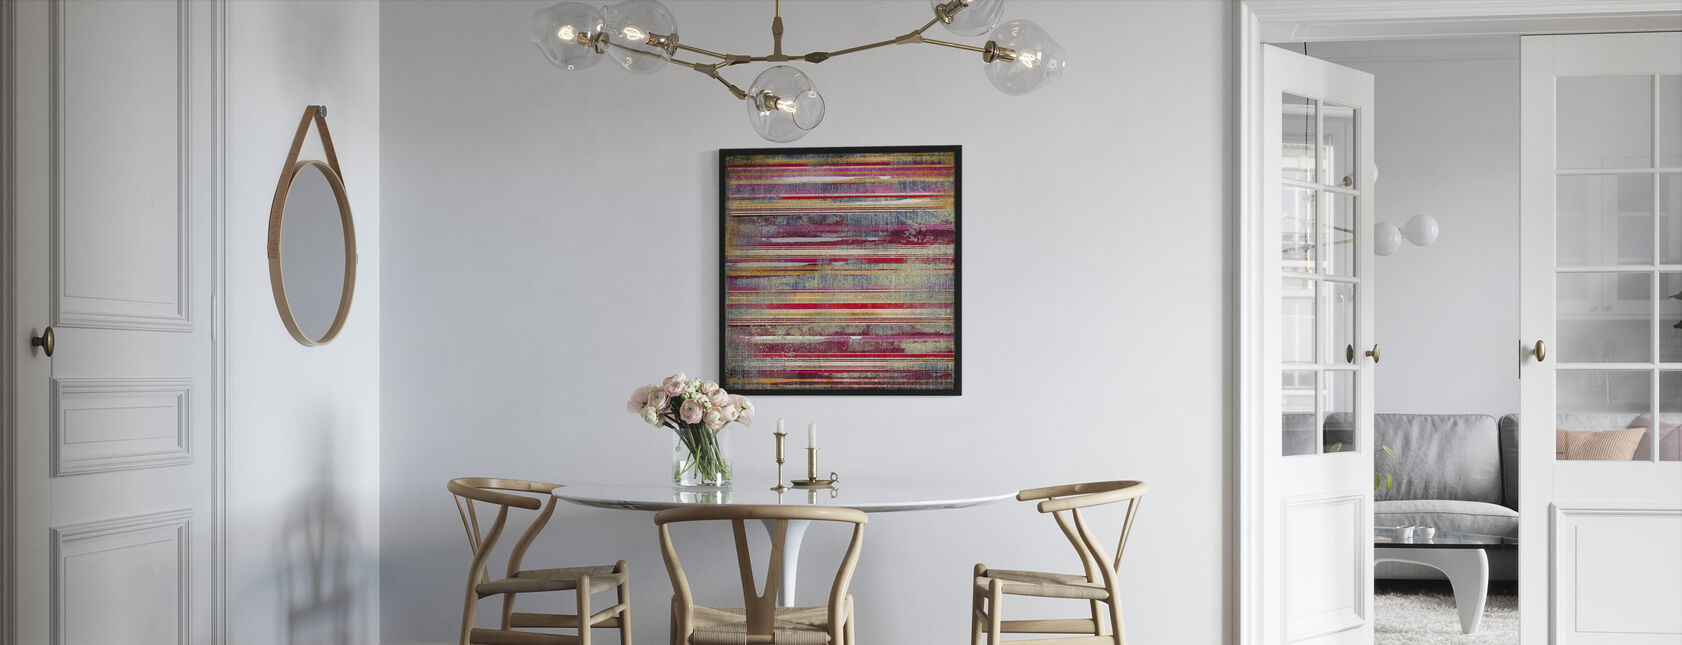 Striped Fabric - Framed print - Kitchen